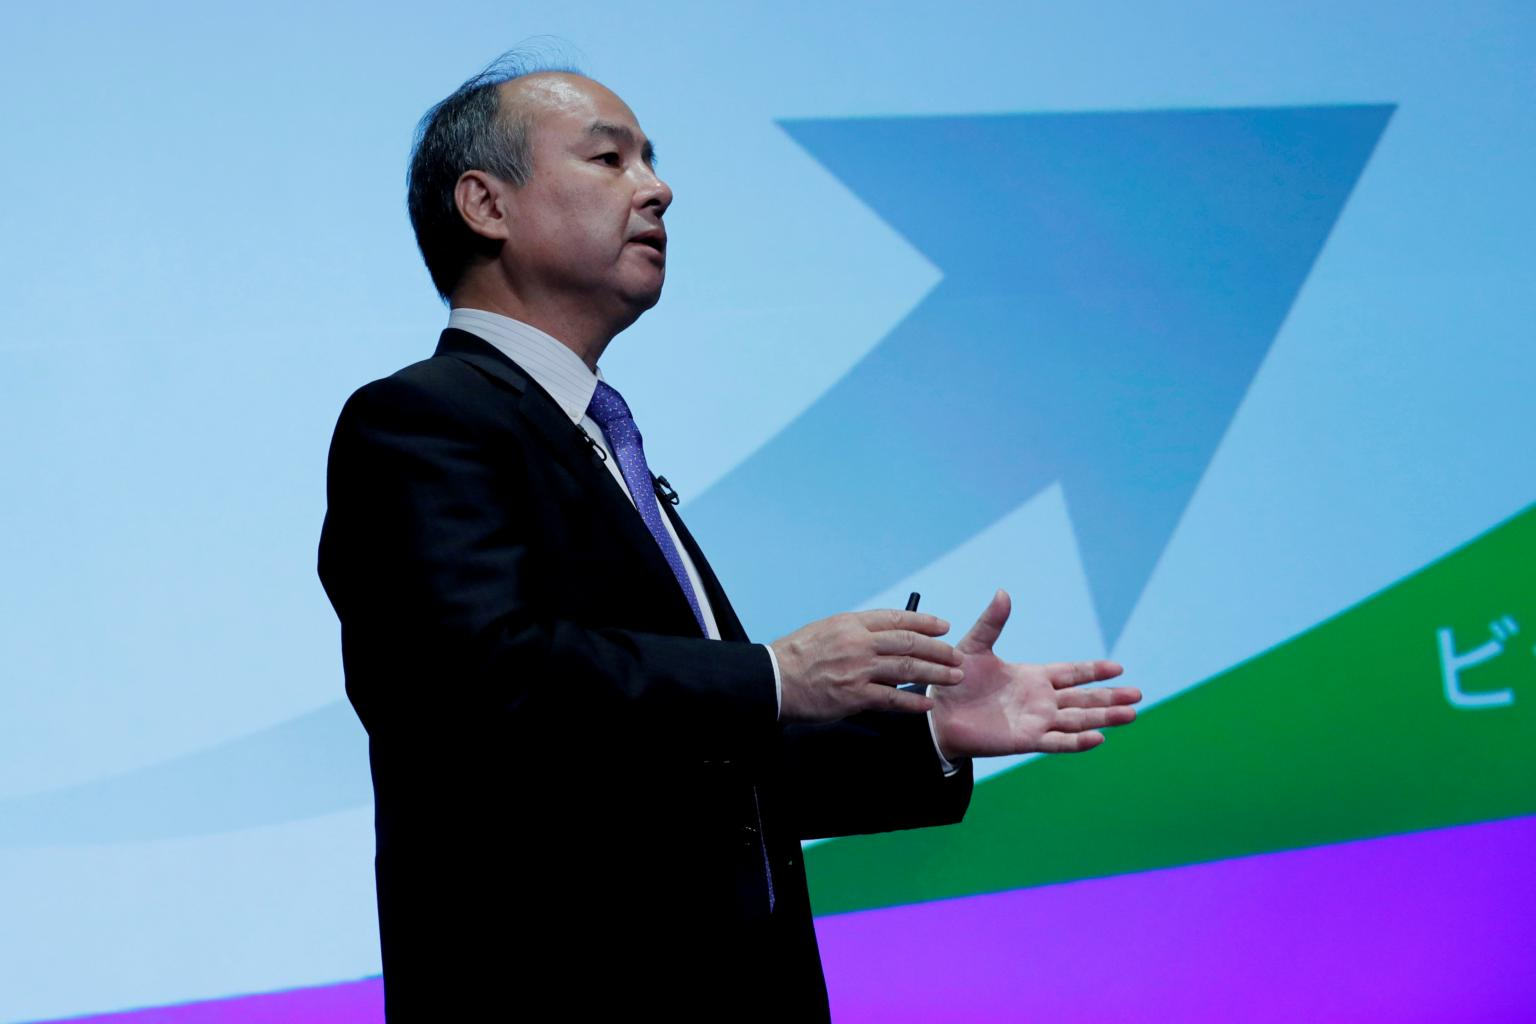 SoftBank's Son is 'embarrassed' by record, impatient to improve, -